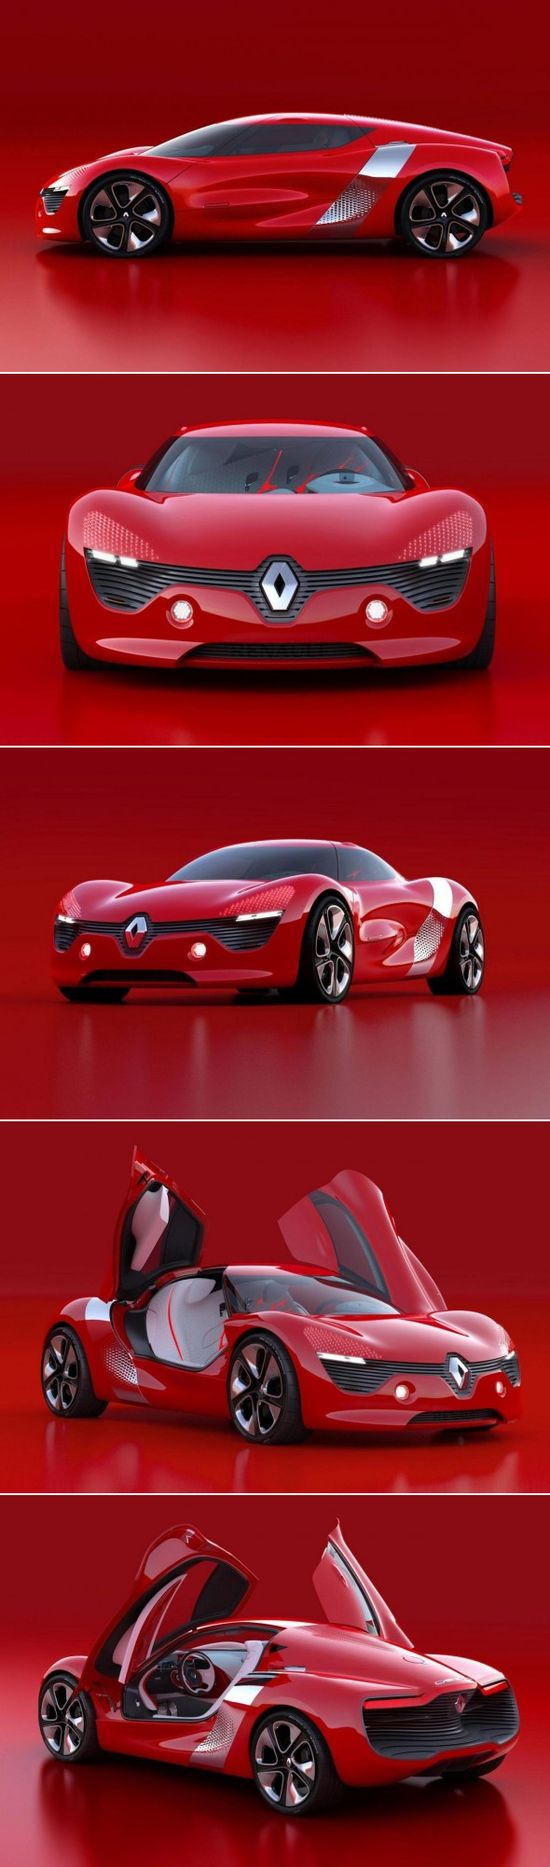 Renault DeZir ~ an electric powered concept car